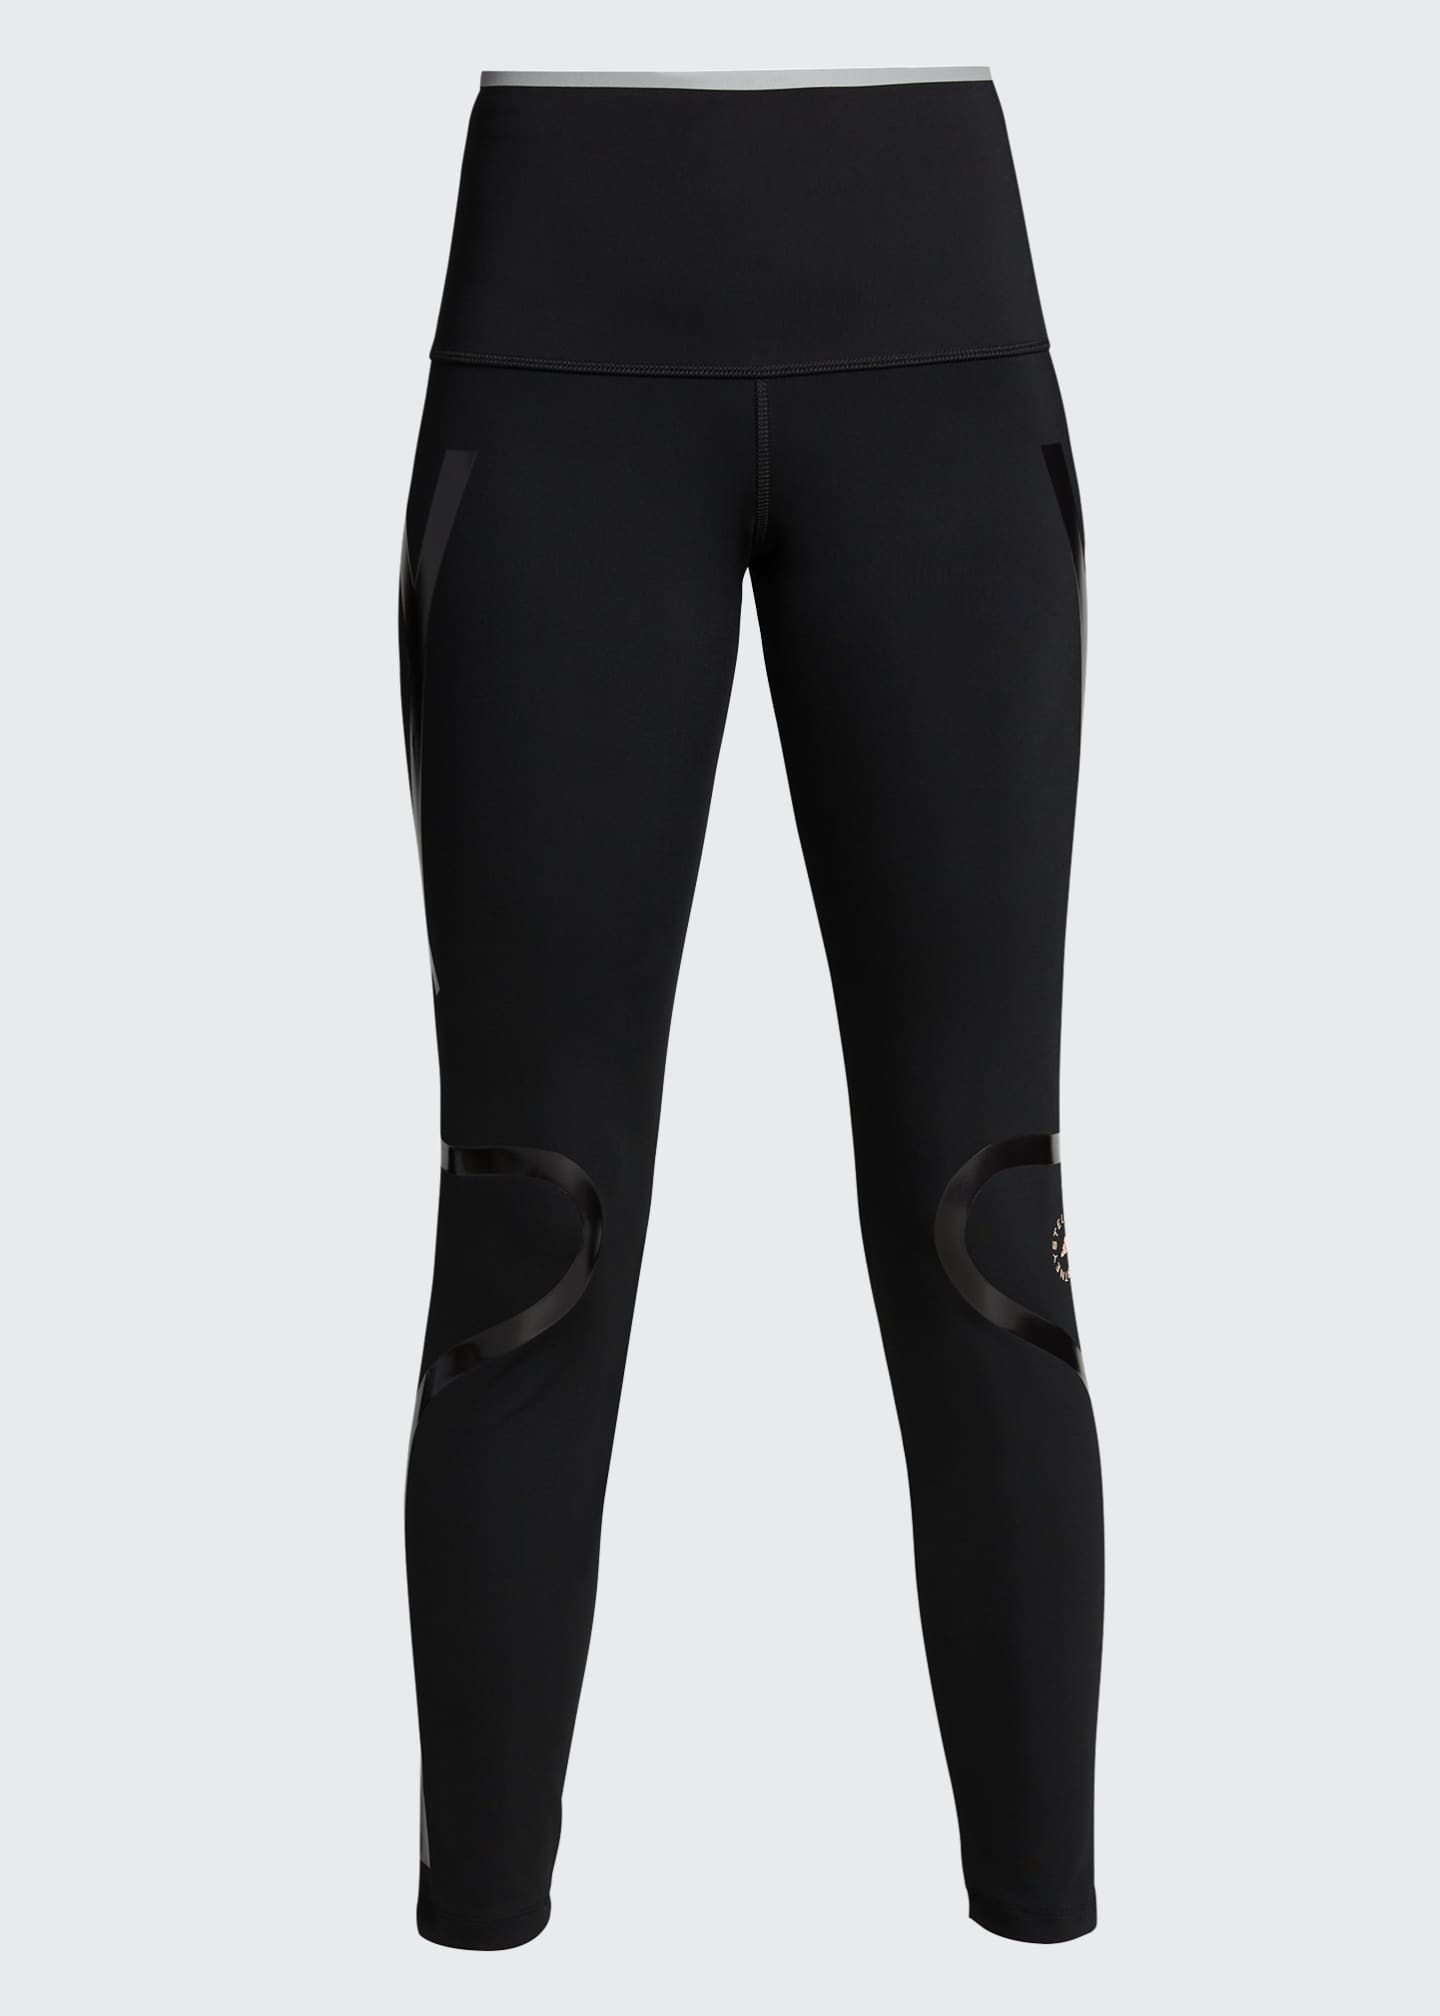 Image 5 of 5: Truepurpose Athletic Tights